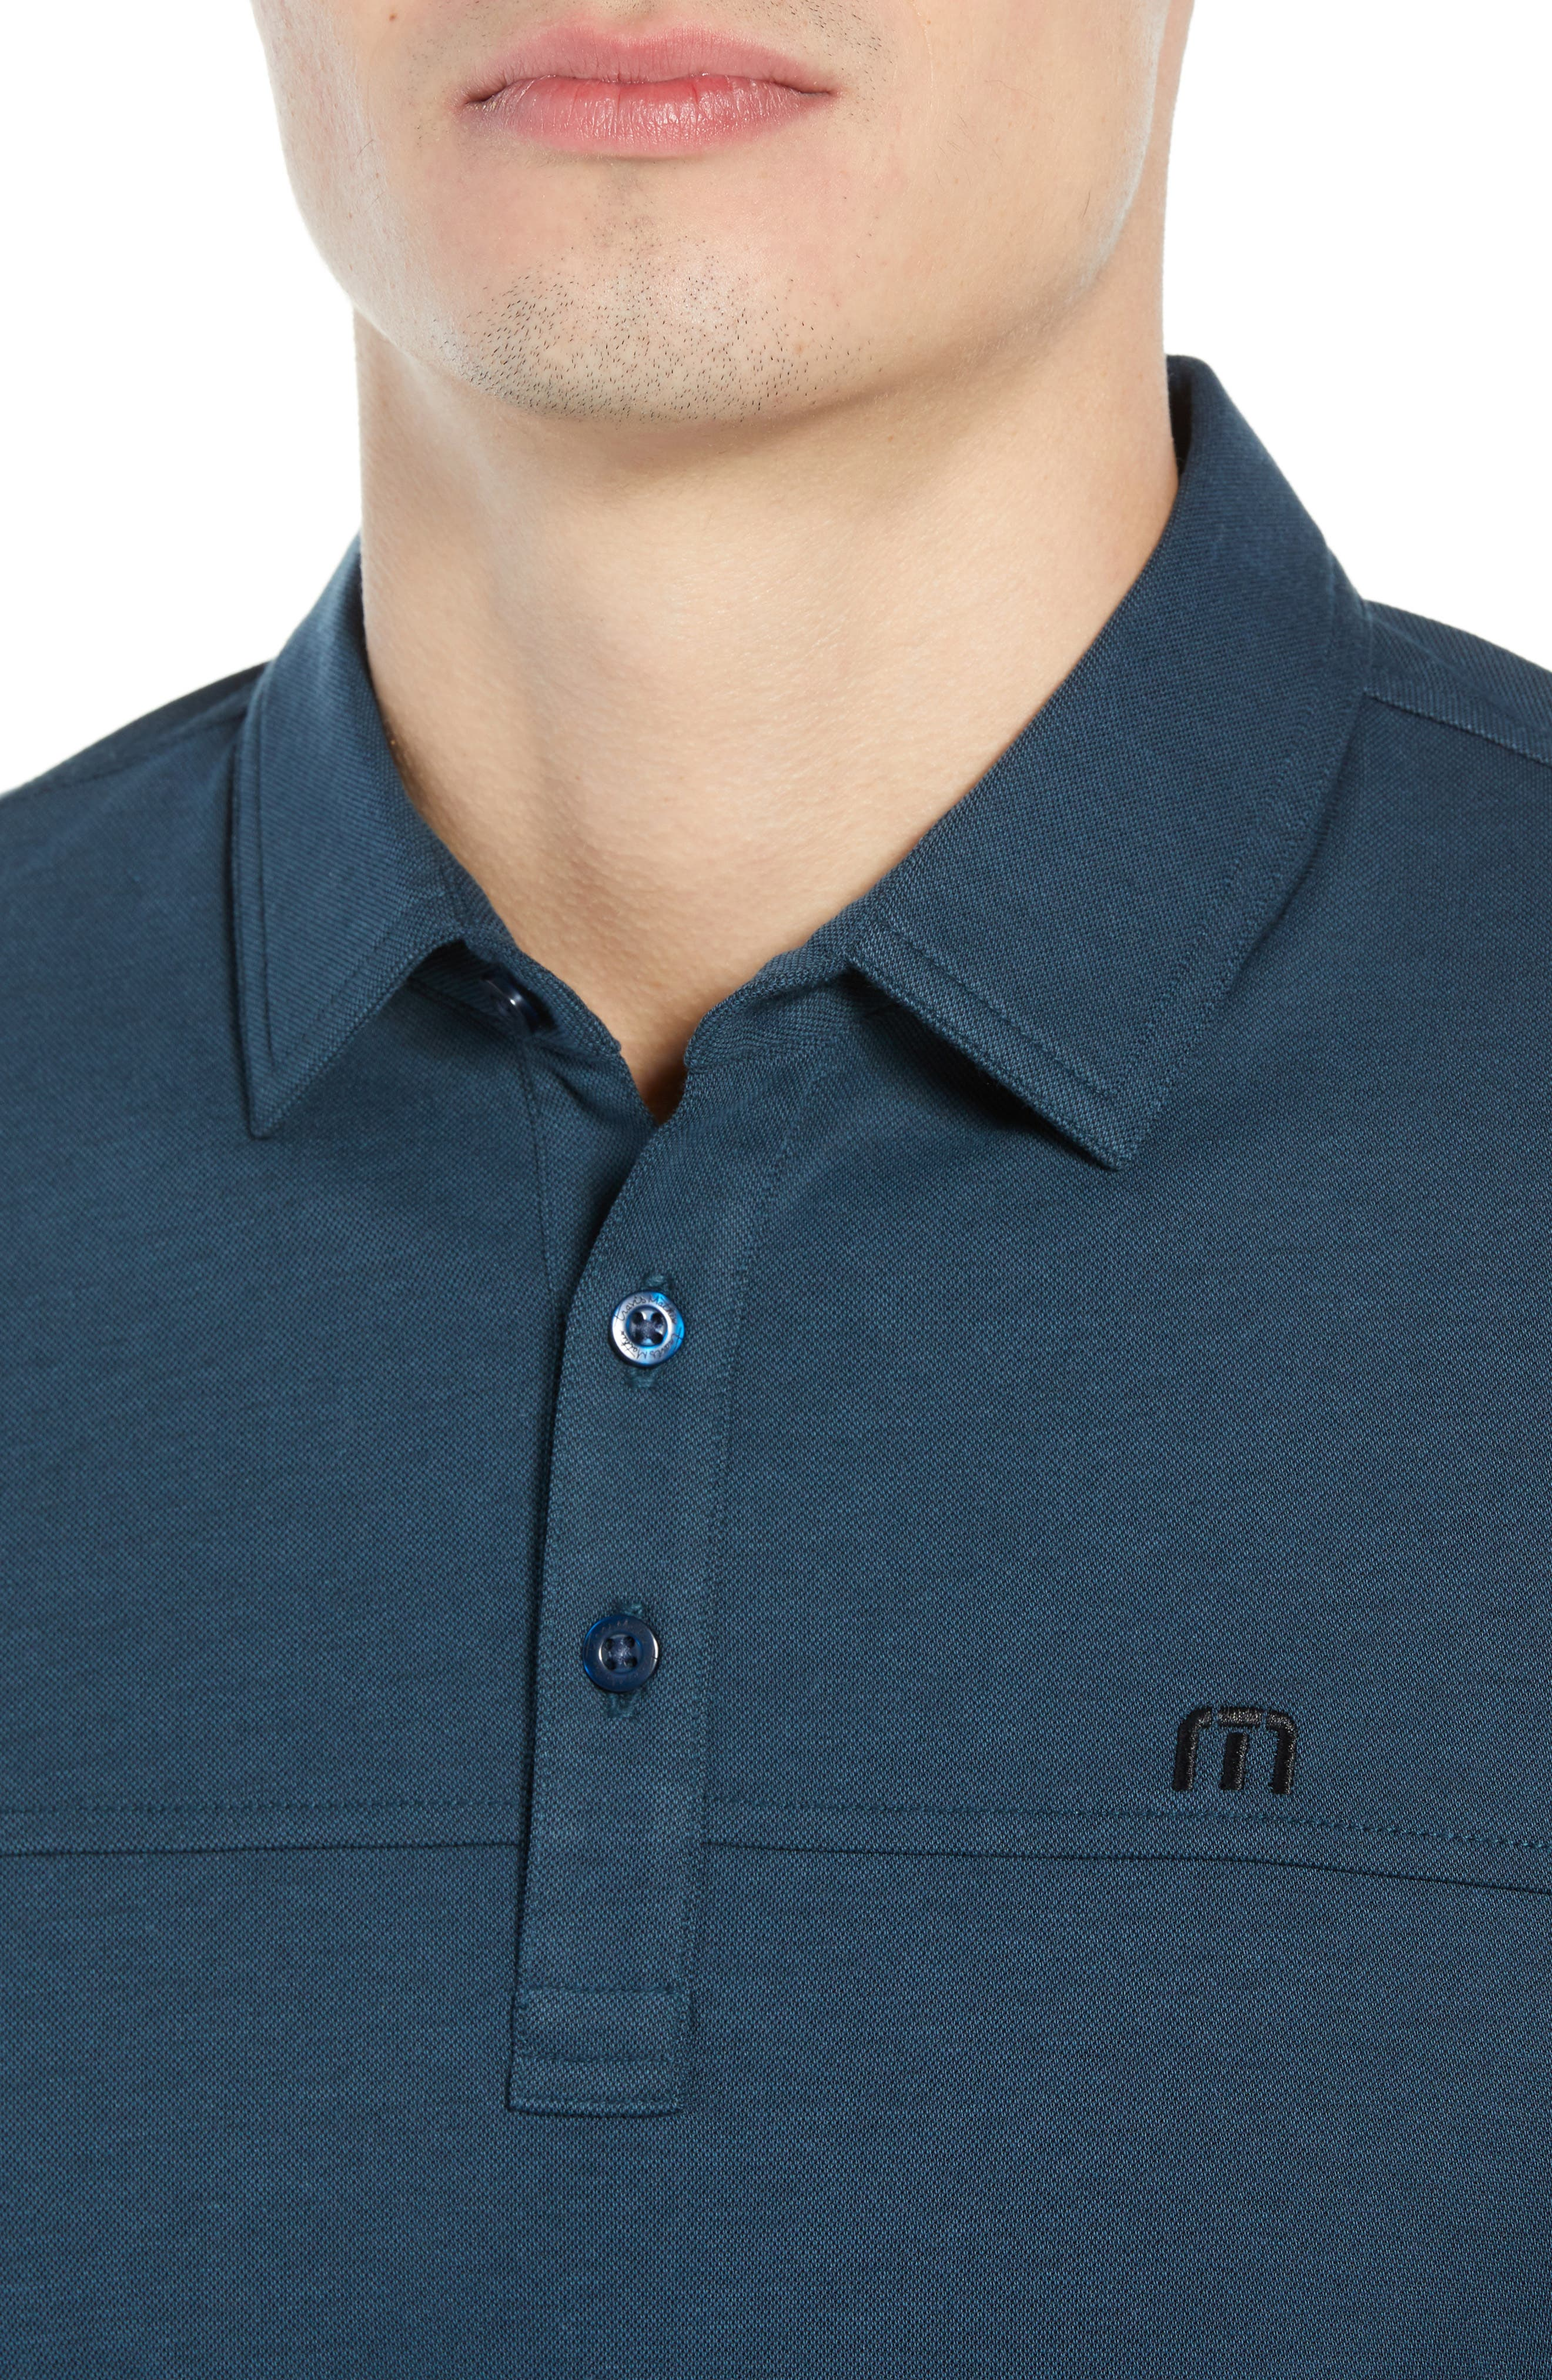 Wojo Piqué Polo,                             Alternate thumbnail 4, color,                             BLUE WING TEAL/BLACK